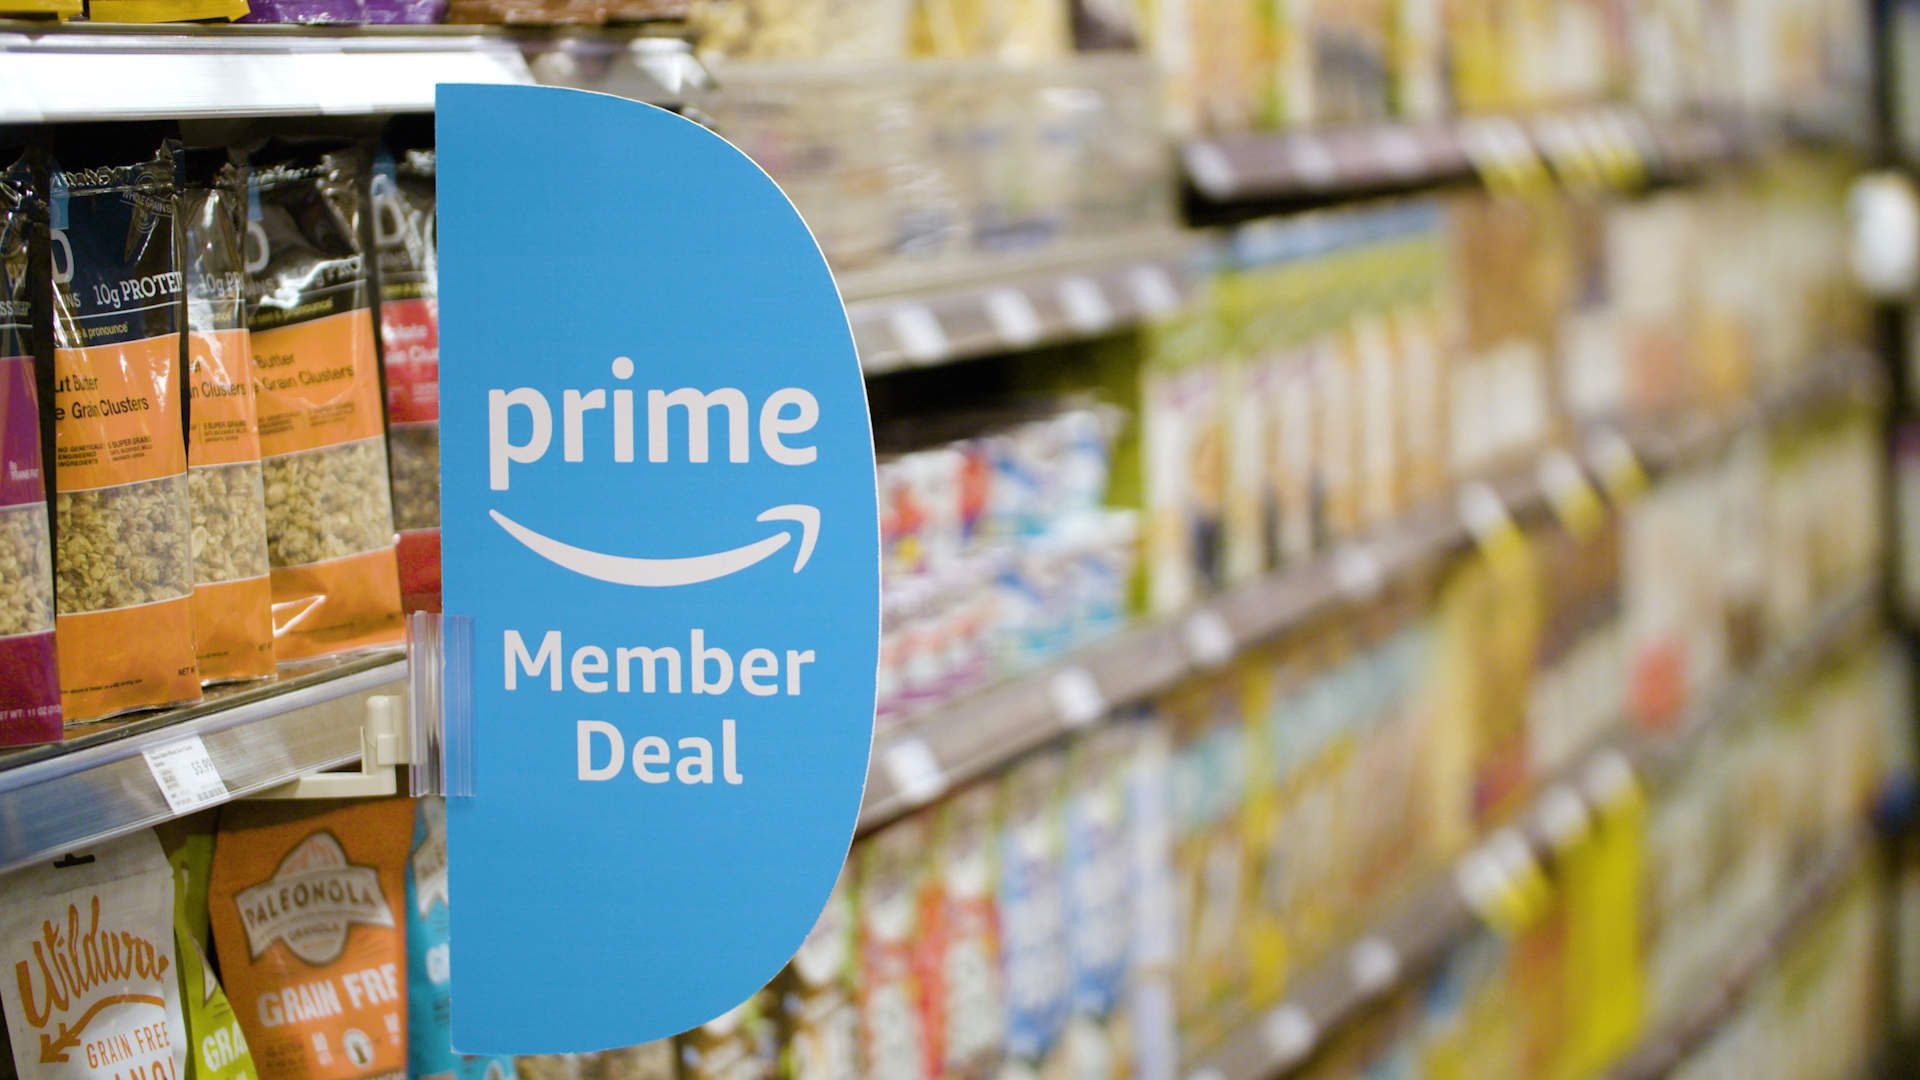 Amazon Is Expanding Prime Benefits at Whole Foods Again